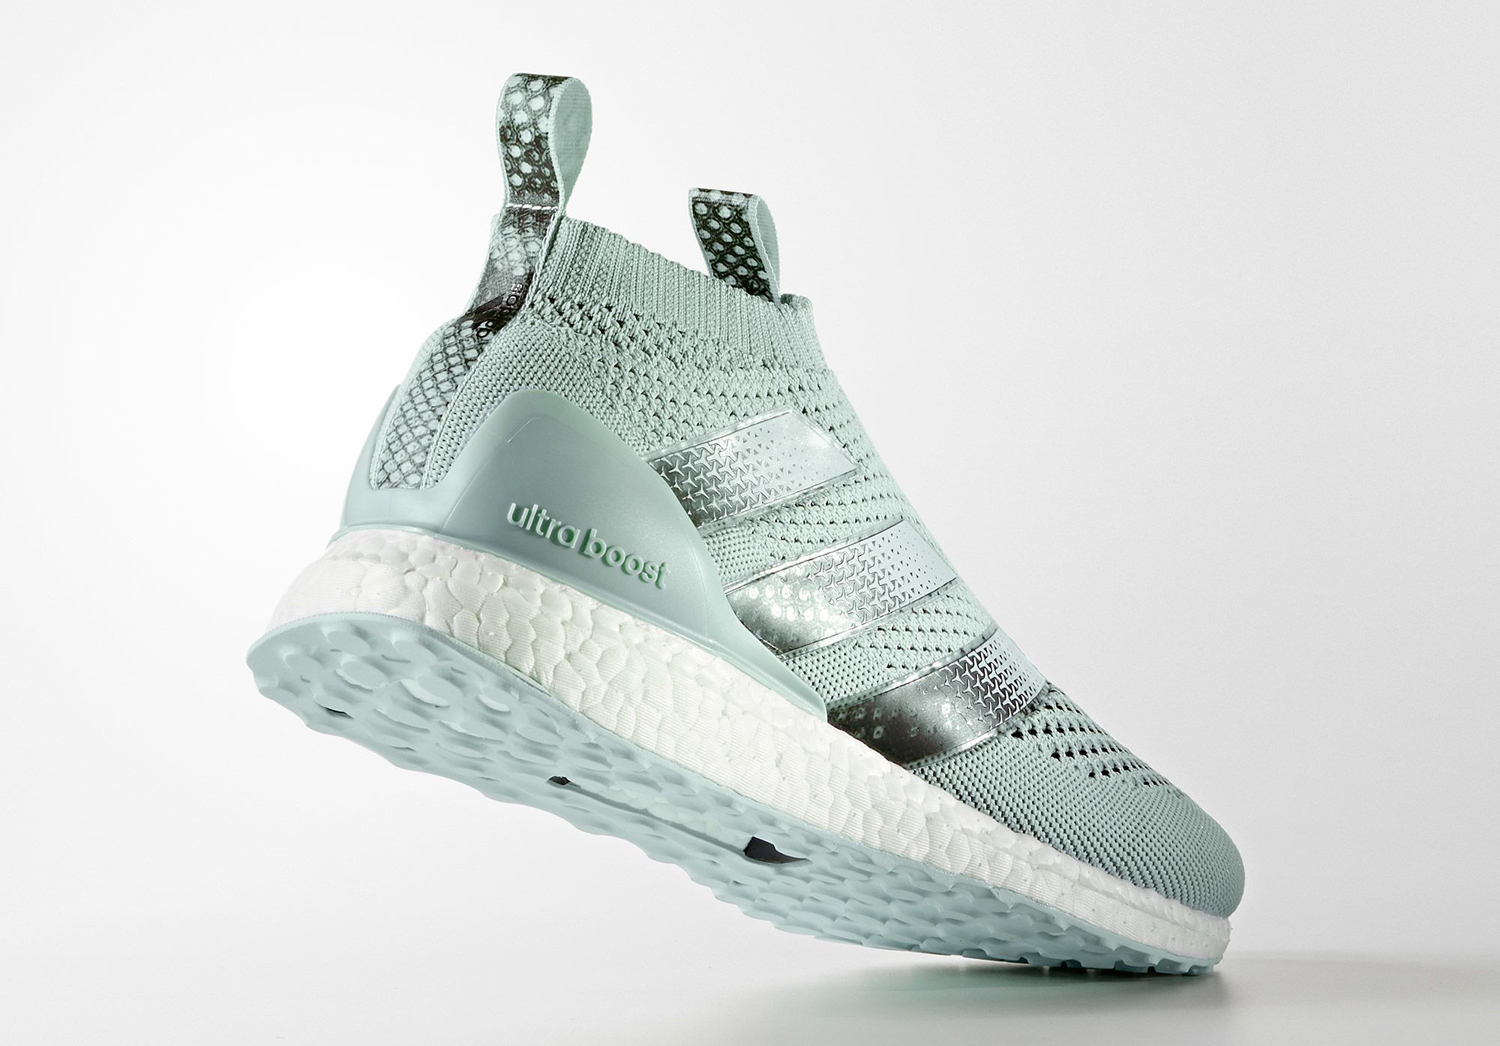 adidas-ace-16-purecontrol-ultraboost-blue-green-5